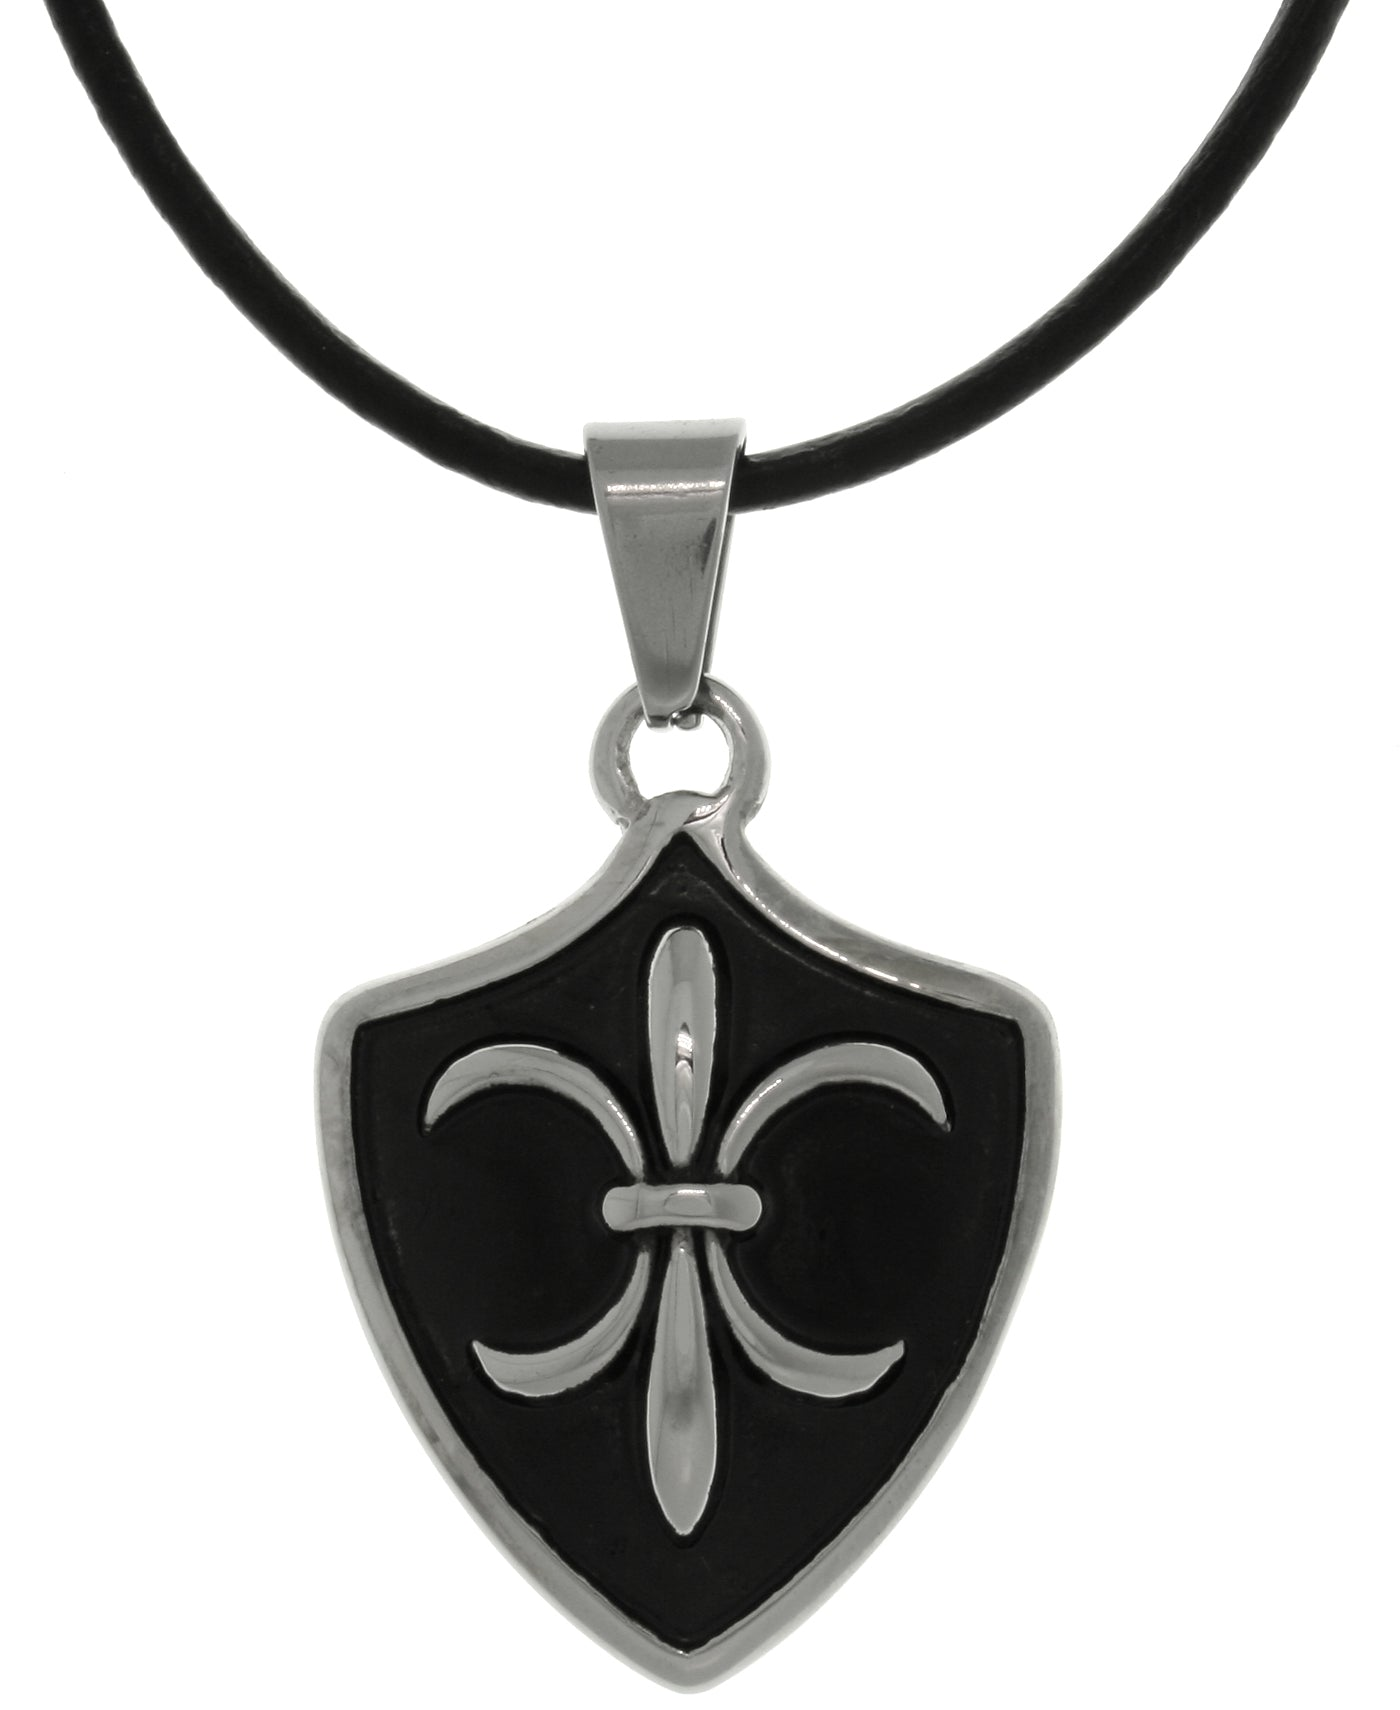 Jewelry Trends Stainless Steel Fleur De Lis Shield Pendant on Black Leather Necklace